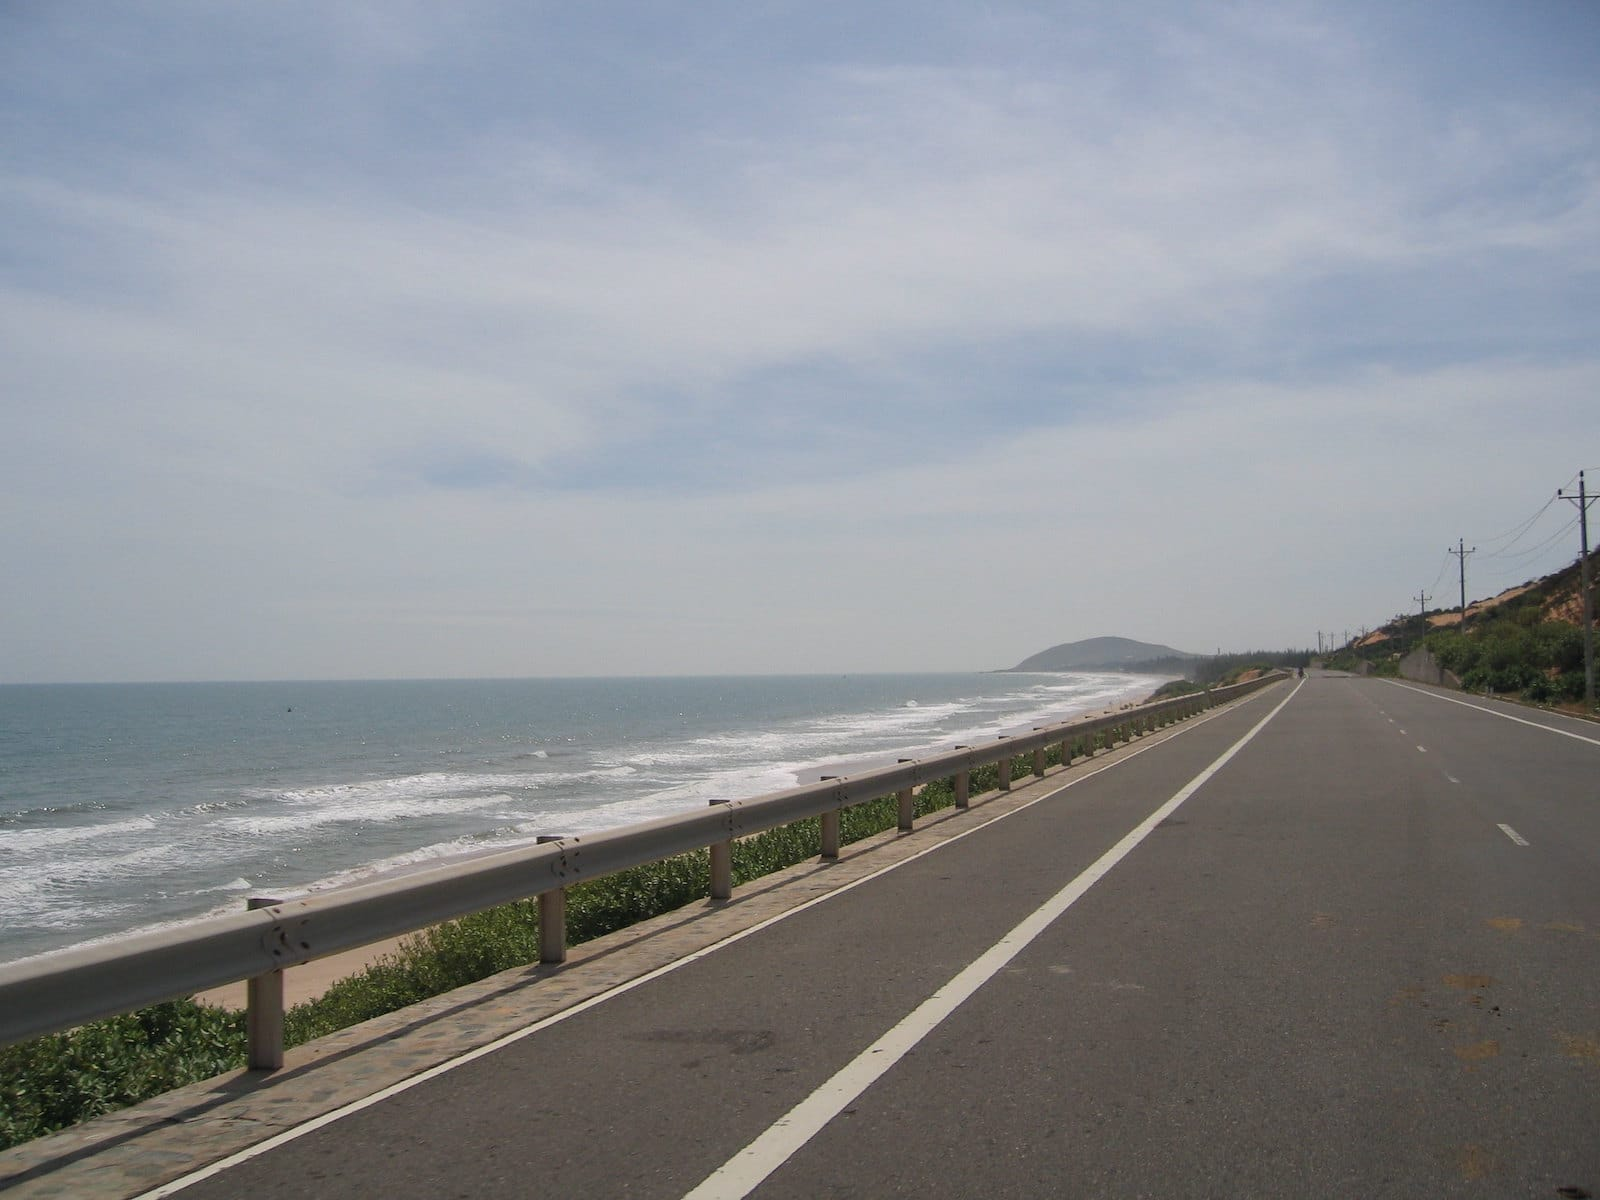 Image of a road by the beach in Mui Ne, Vietnam